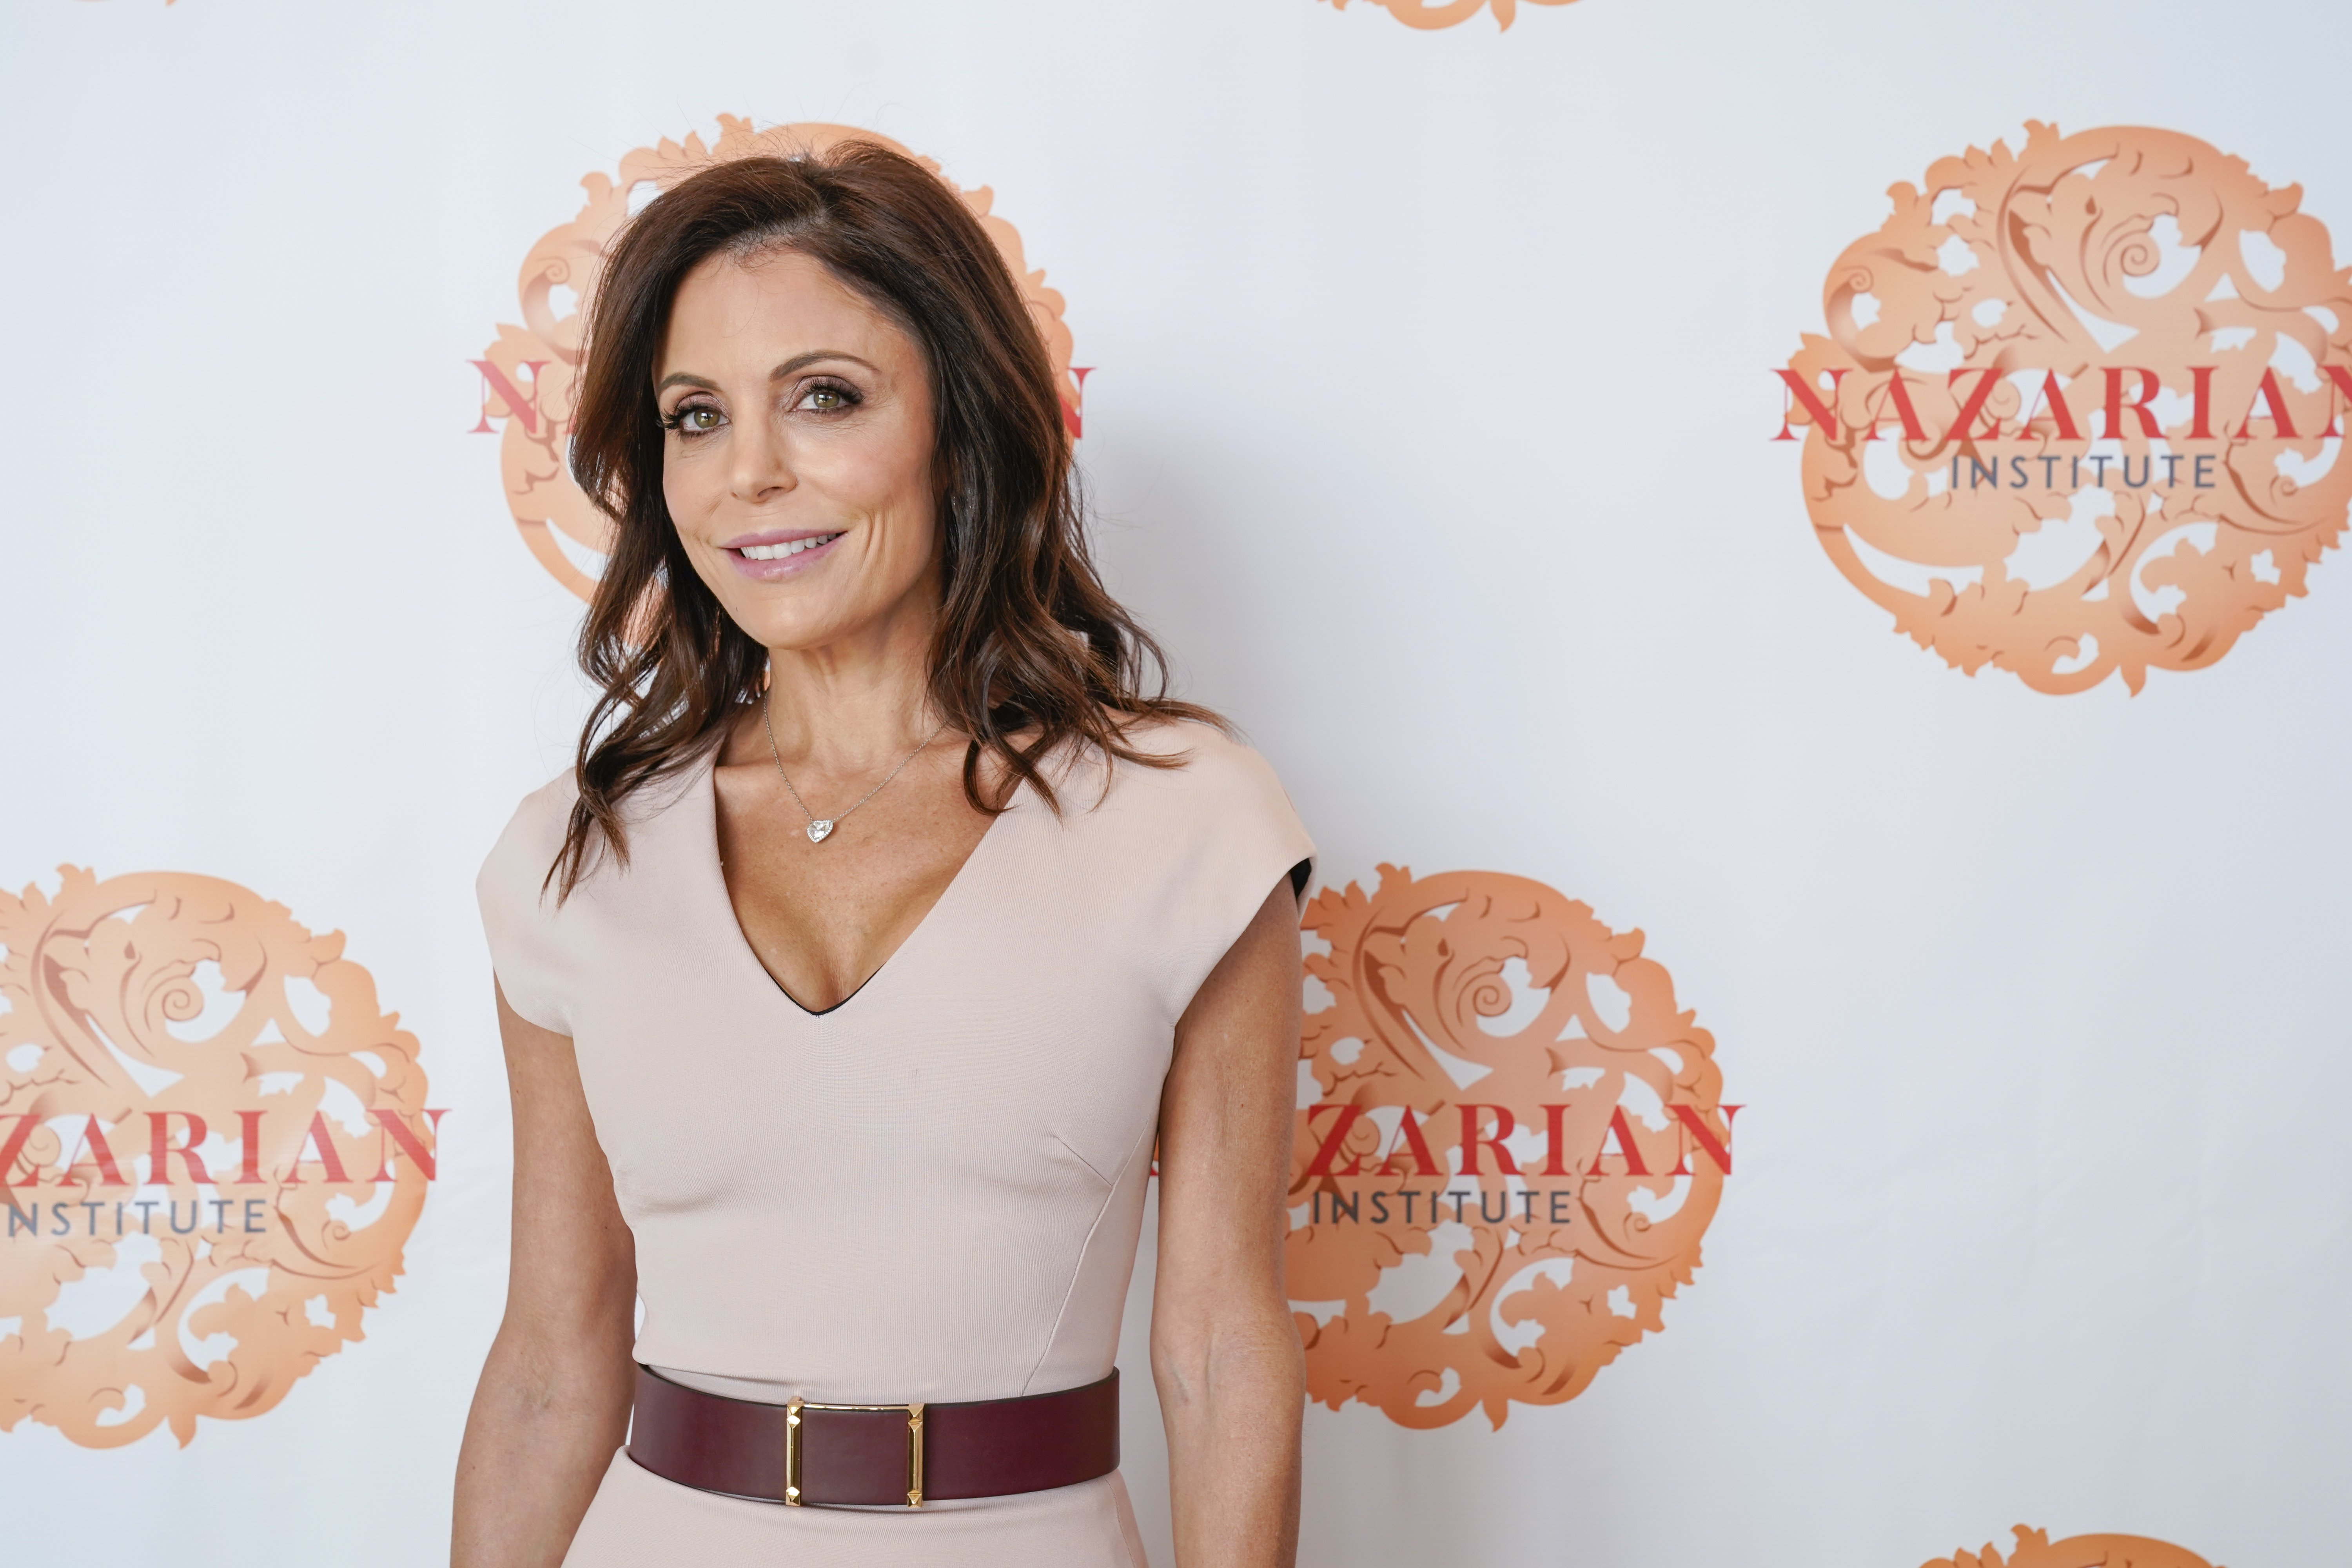 Bethenny Frankel attends day one of the 2019 Nazarian Institute on January 26, 2019 in Los Angeles, California   Photo: Getty Images